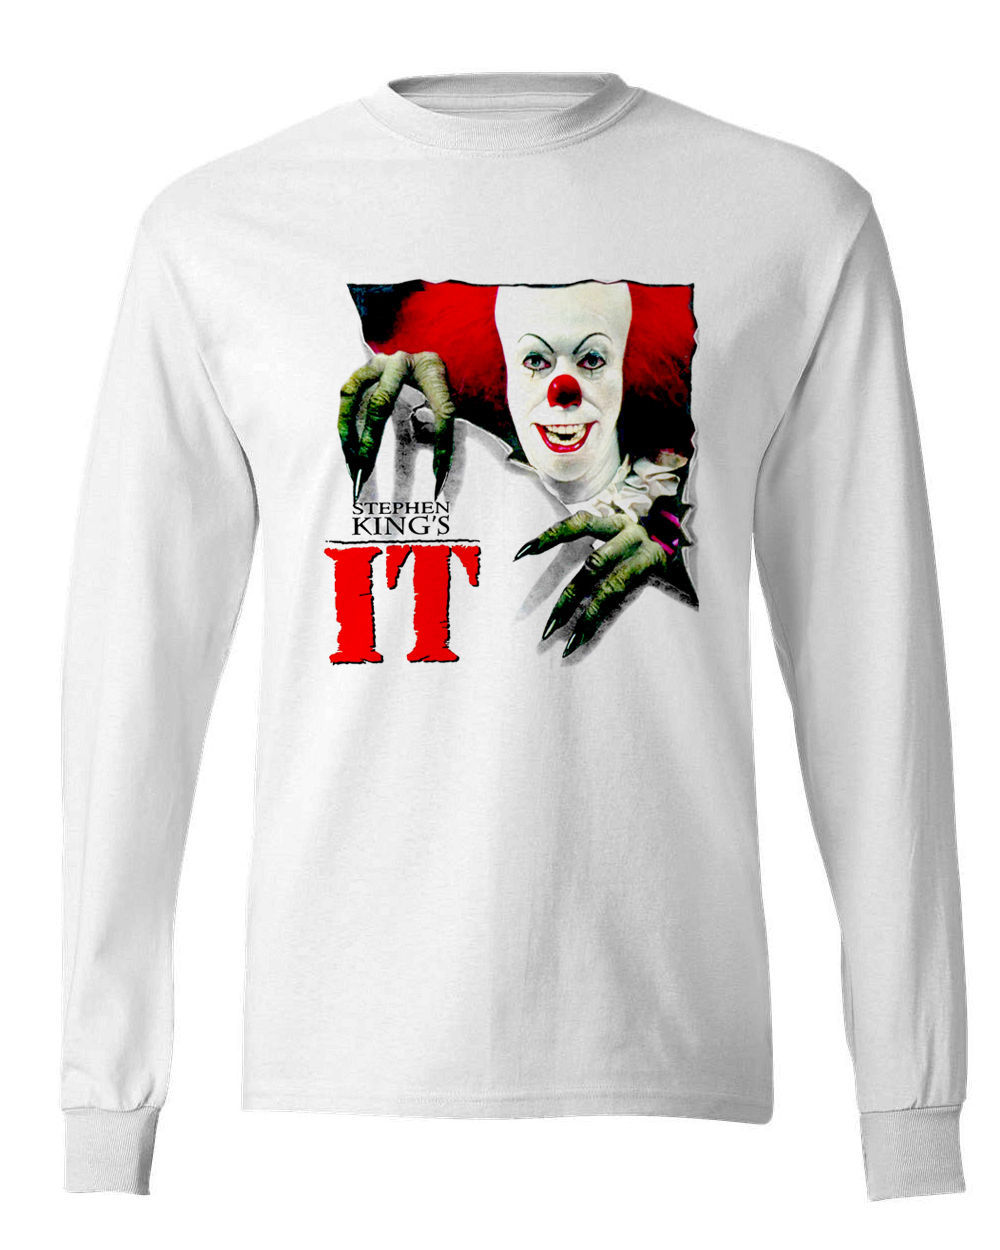 Stephen king it t shirt long sleeve white graphic tee cujo retro 80 s horror for sale online